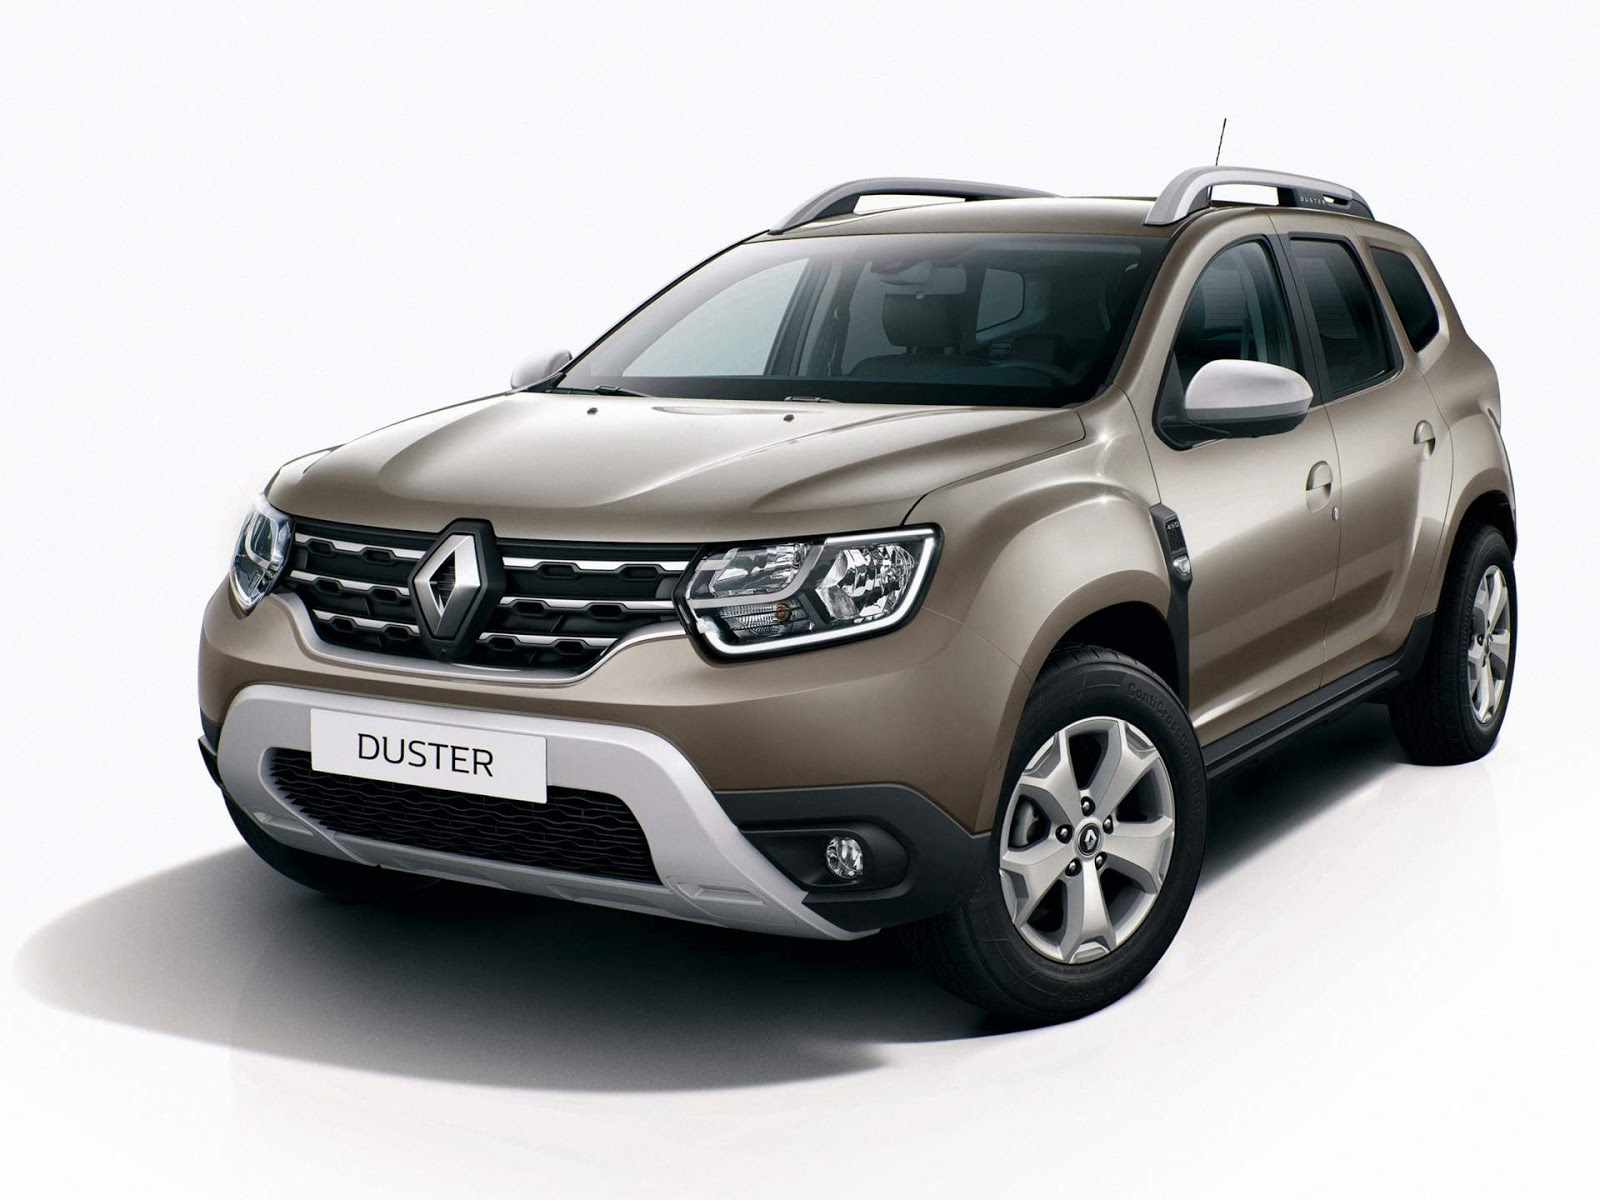 novo renault duster 2018 fotos oficiais divulgadas car blog br. Black Bedroom Furniture Sets. Home Design Ideas